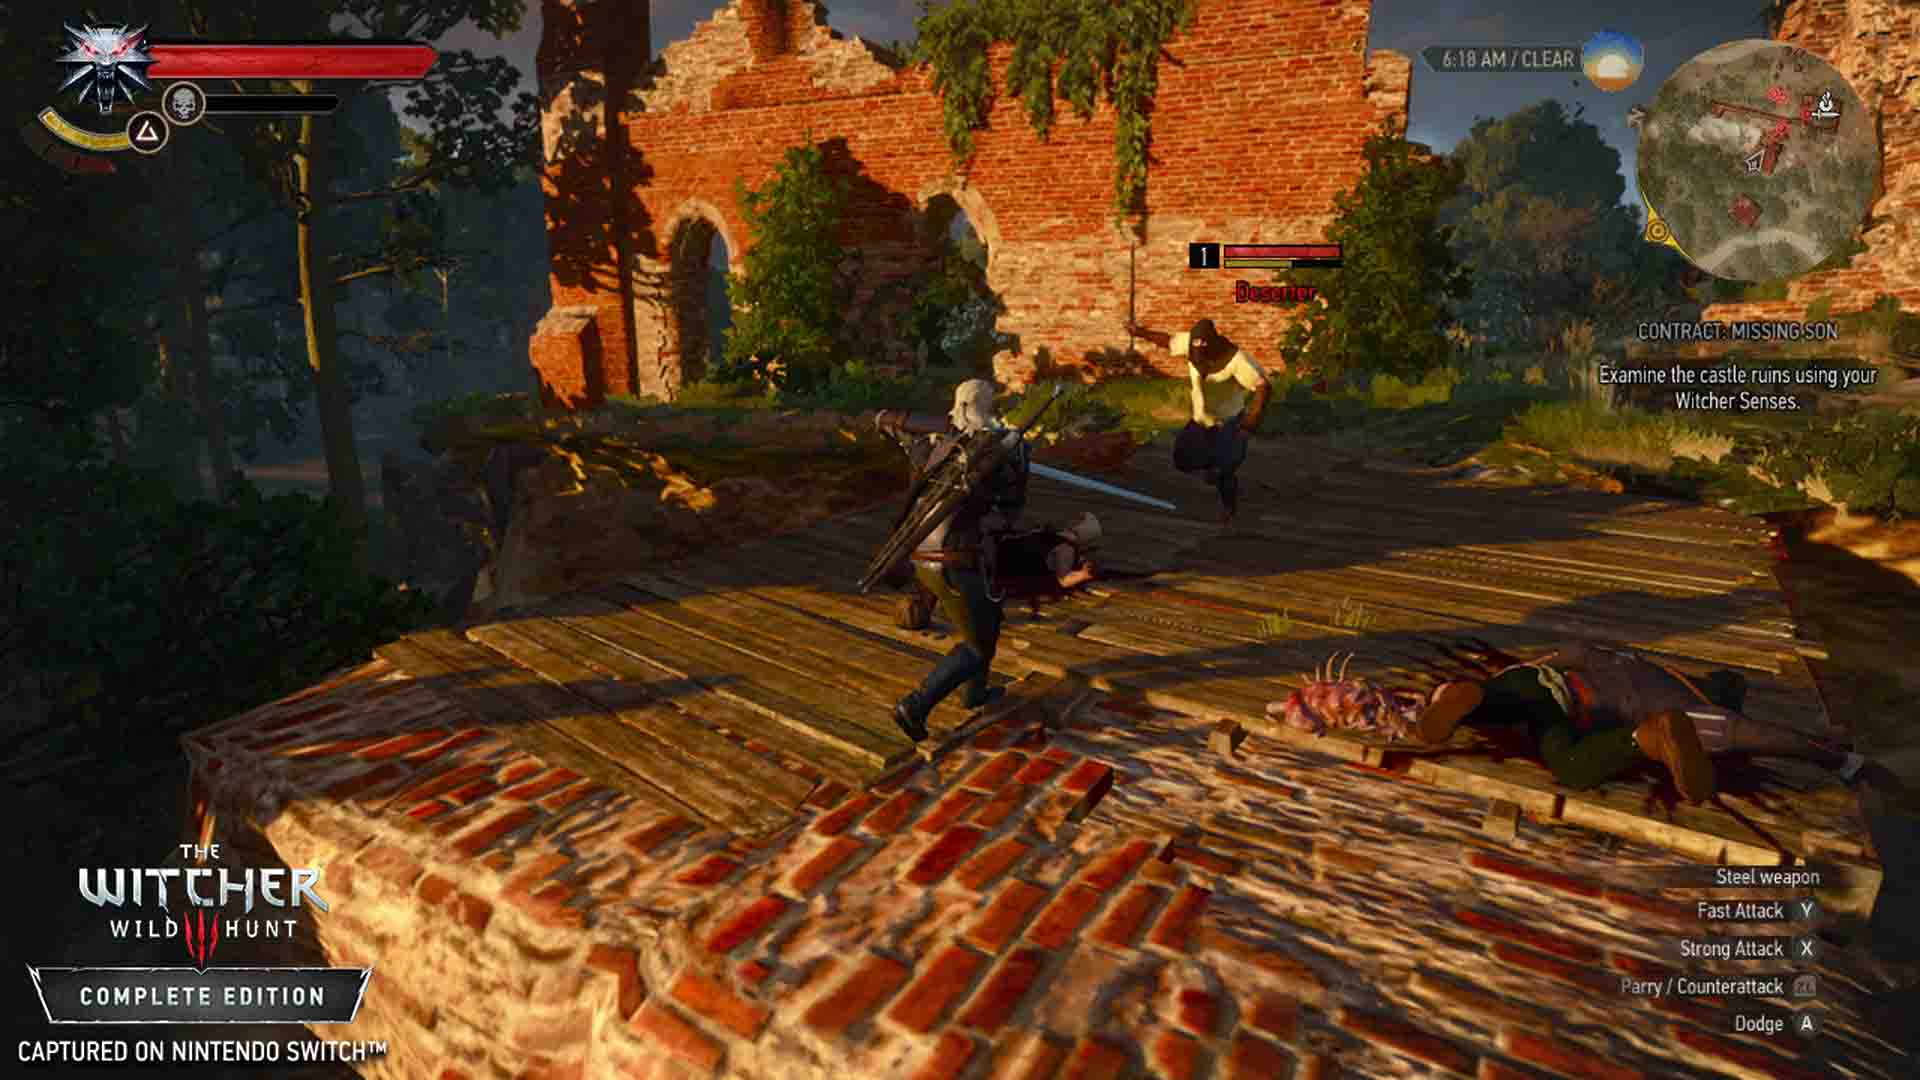 Witcher 3: Wild Hunt - Complete Edition - Screenshot 5